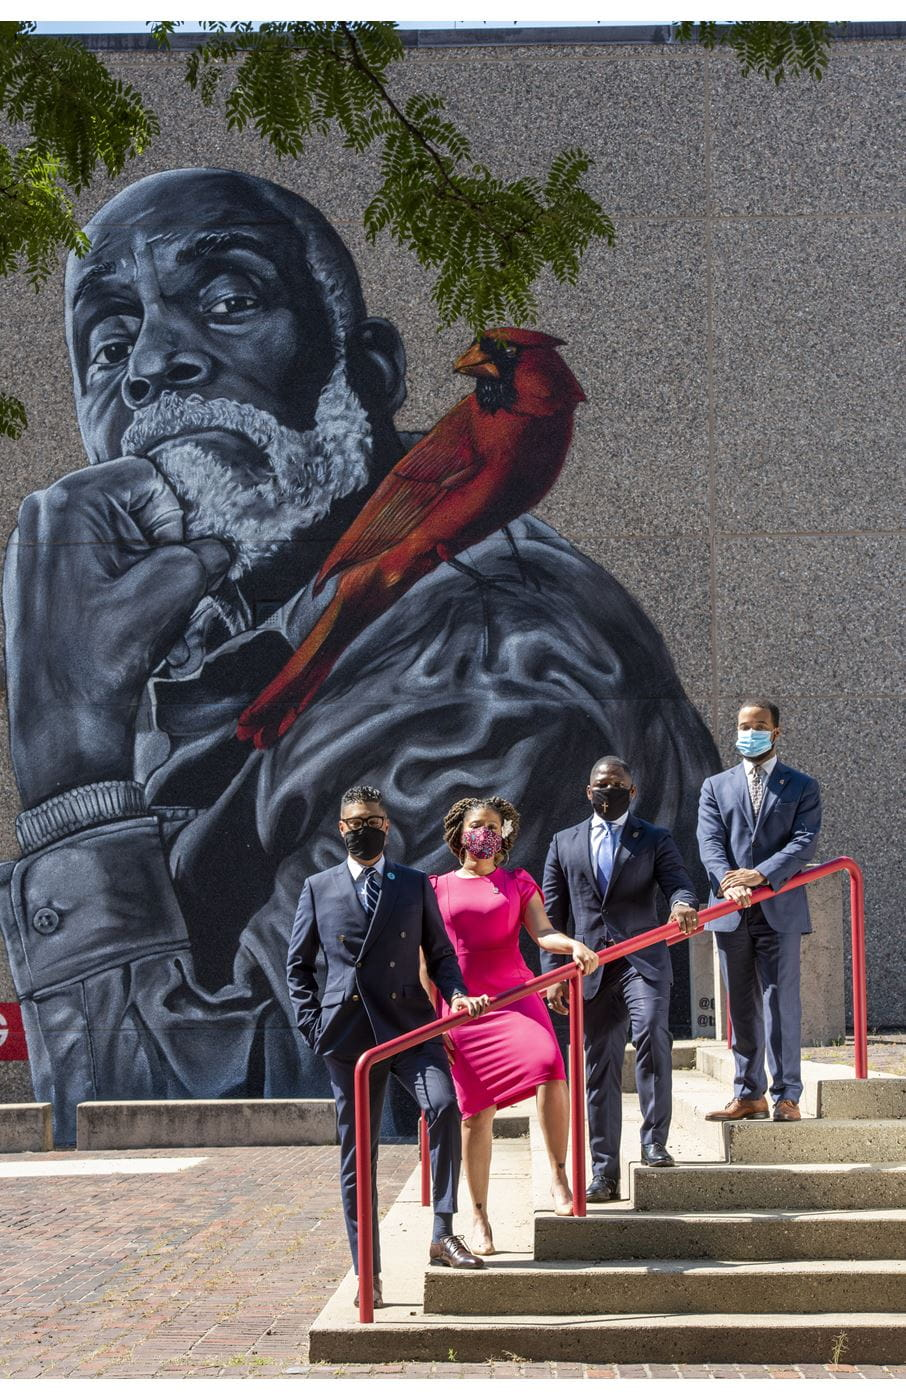 Imari Paris Jeffries, Sheena Collier, Willie Brodick and Segun Idowu standing in a row on a set of concrete stairs, outside with masks on. Behind them is a concrete wall witha. large mural of Mel King with a cardinal on his shoulder. Branches and leaves of a tree peak into the top of the frame.